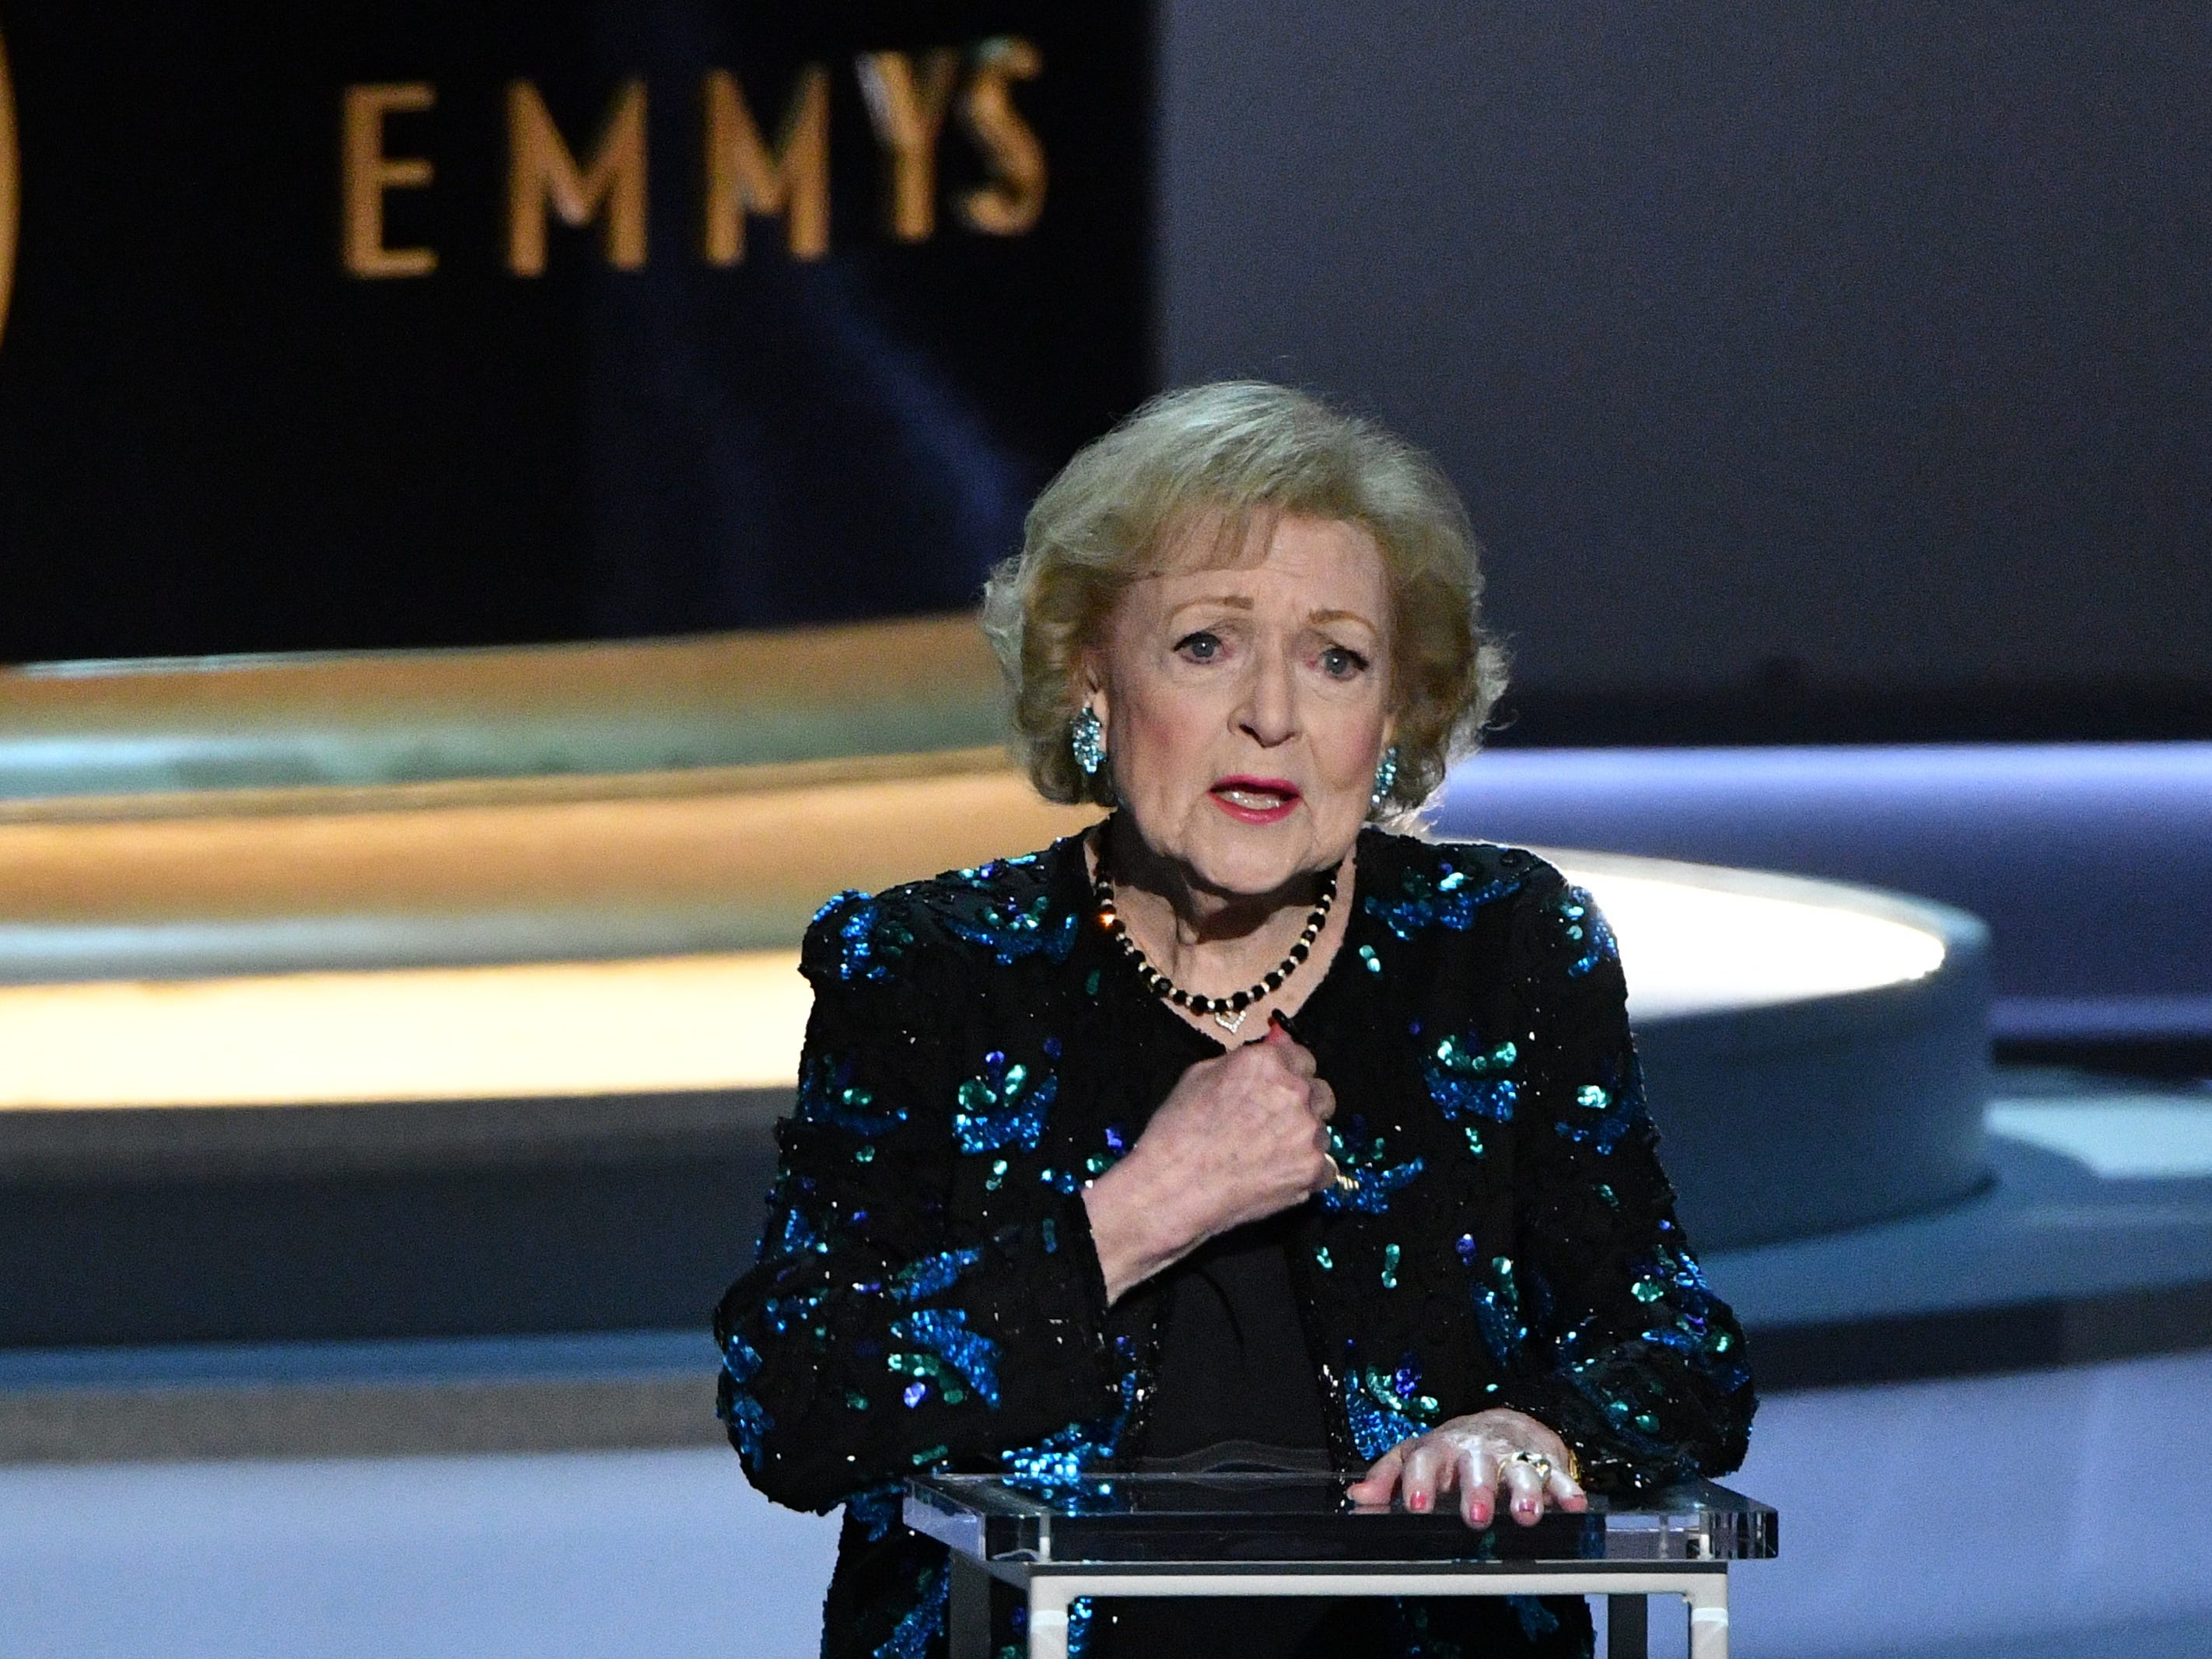 Betty White addresses the crowd during the show.